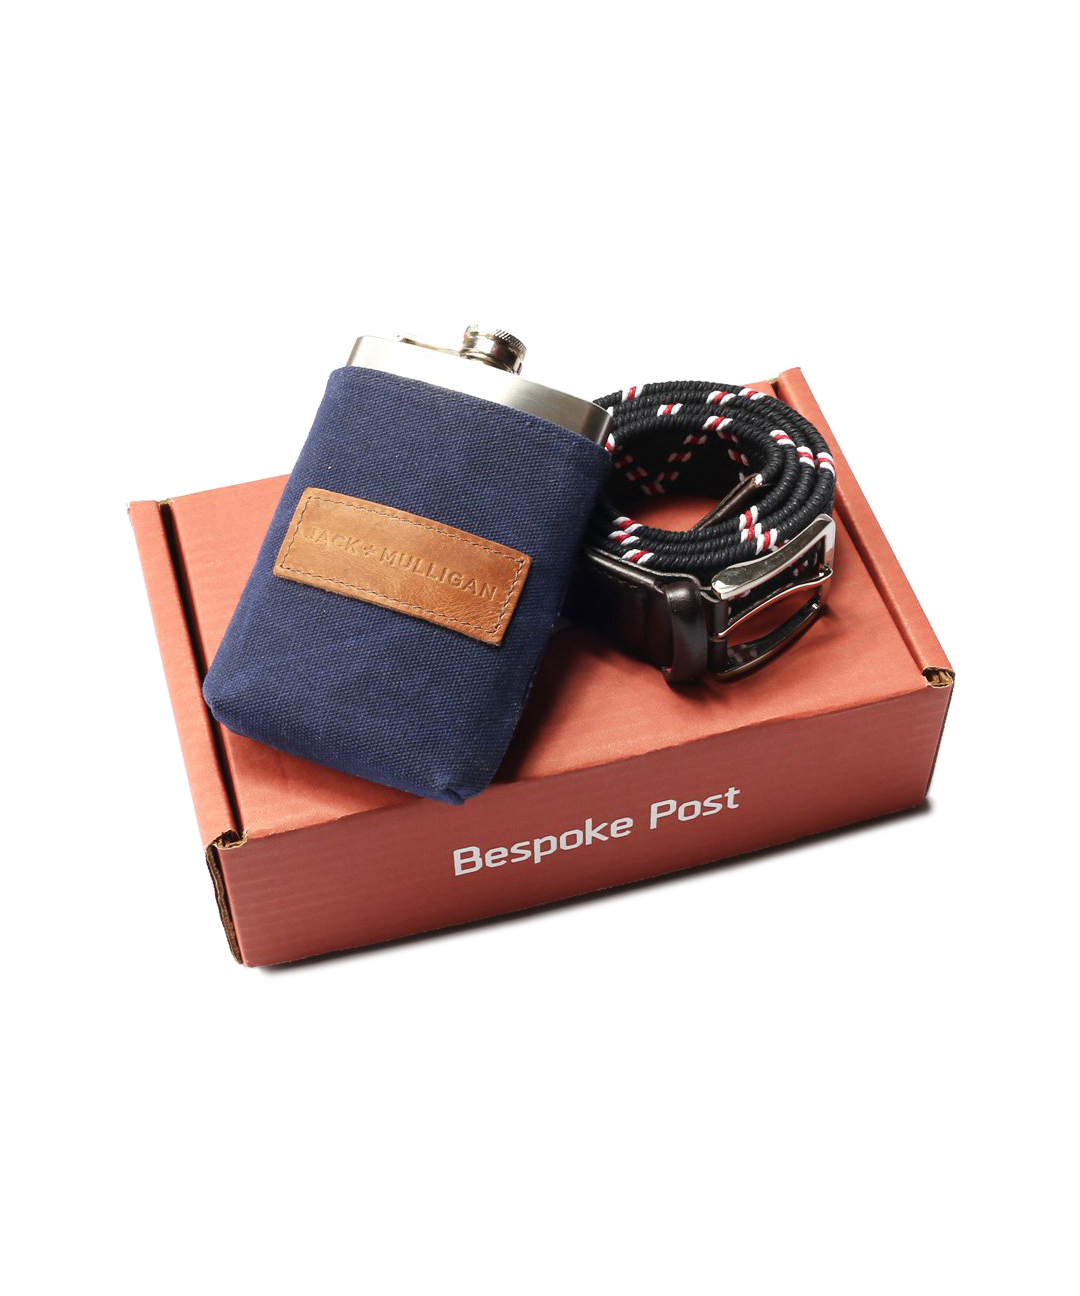 6 Unique Gift Boxes Your Dad Will Love